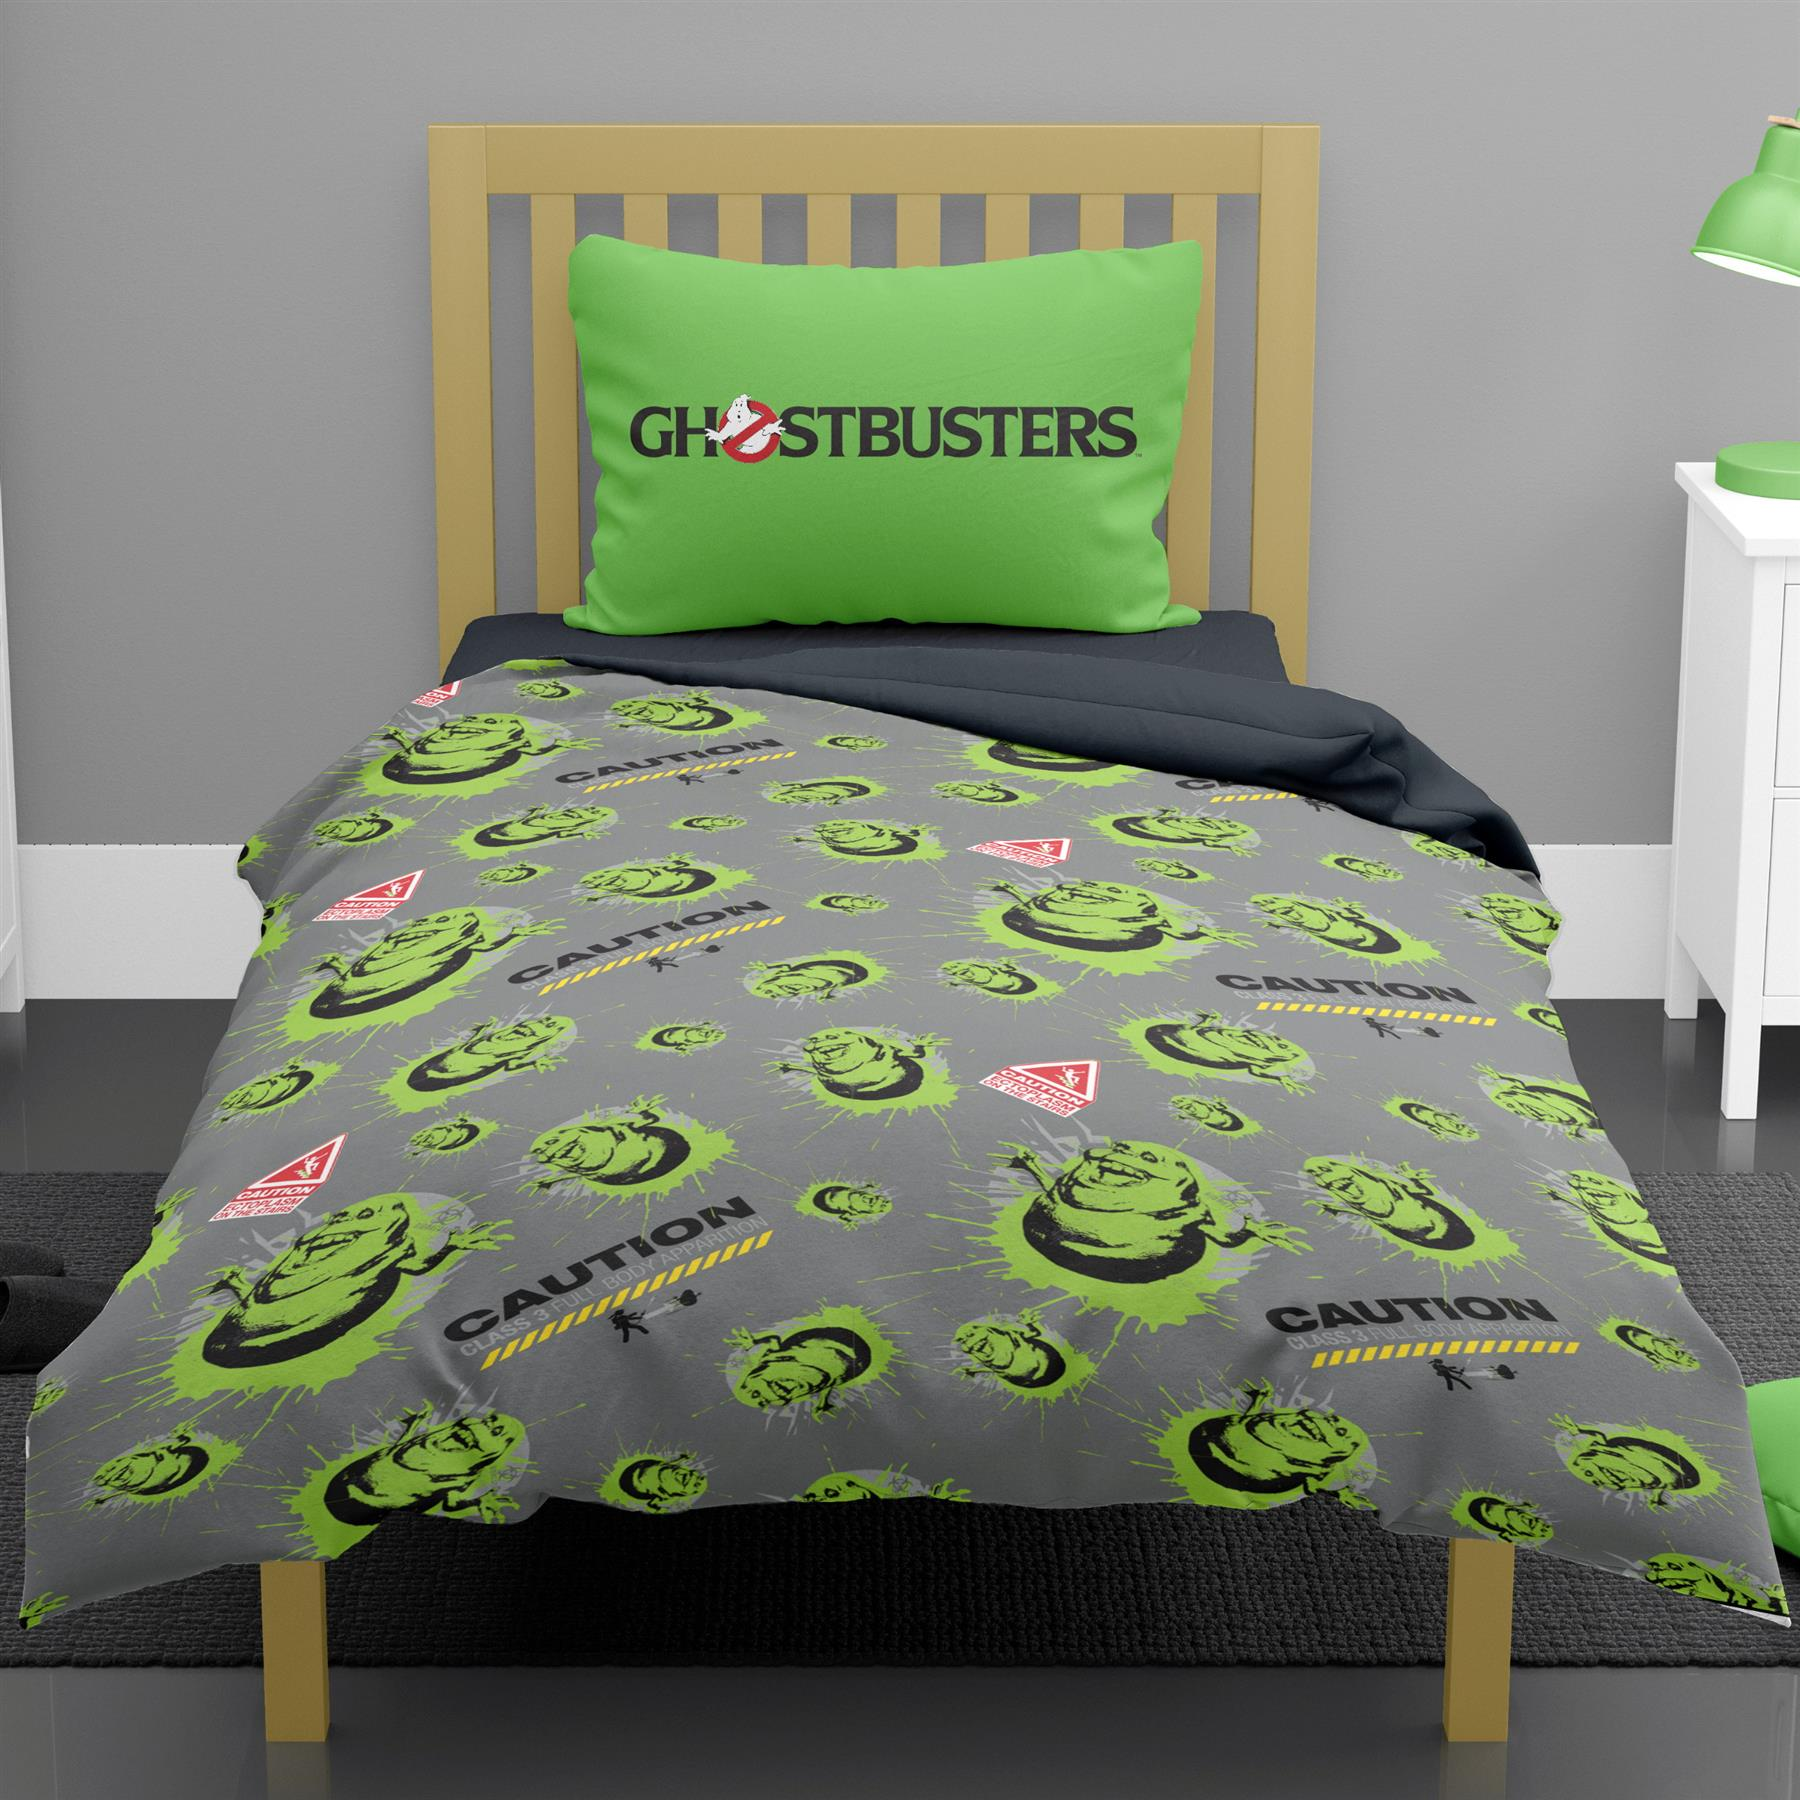 Ghostbusters-Glow-in-the-Dark-Single-Double-Duvet-Cover-Reversible-Bedding thumbnail 5